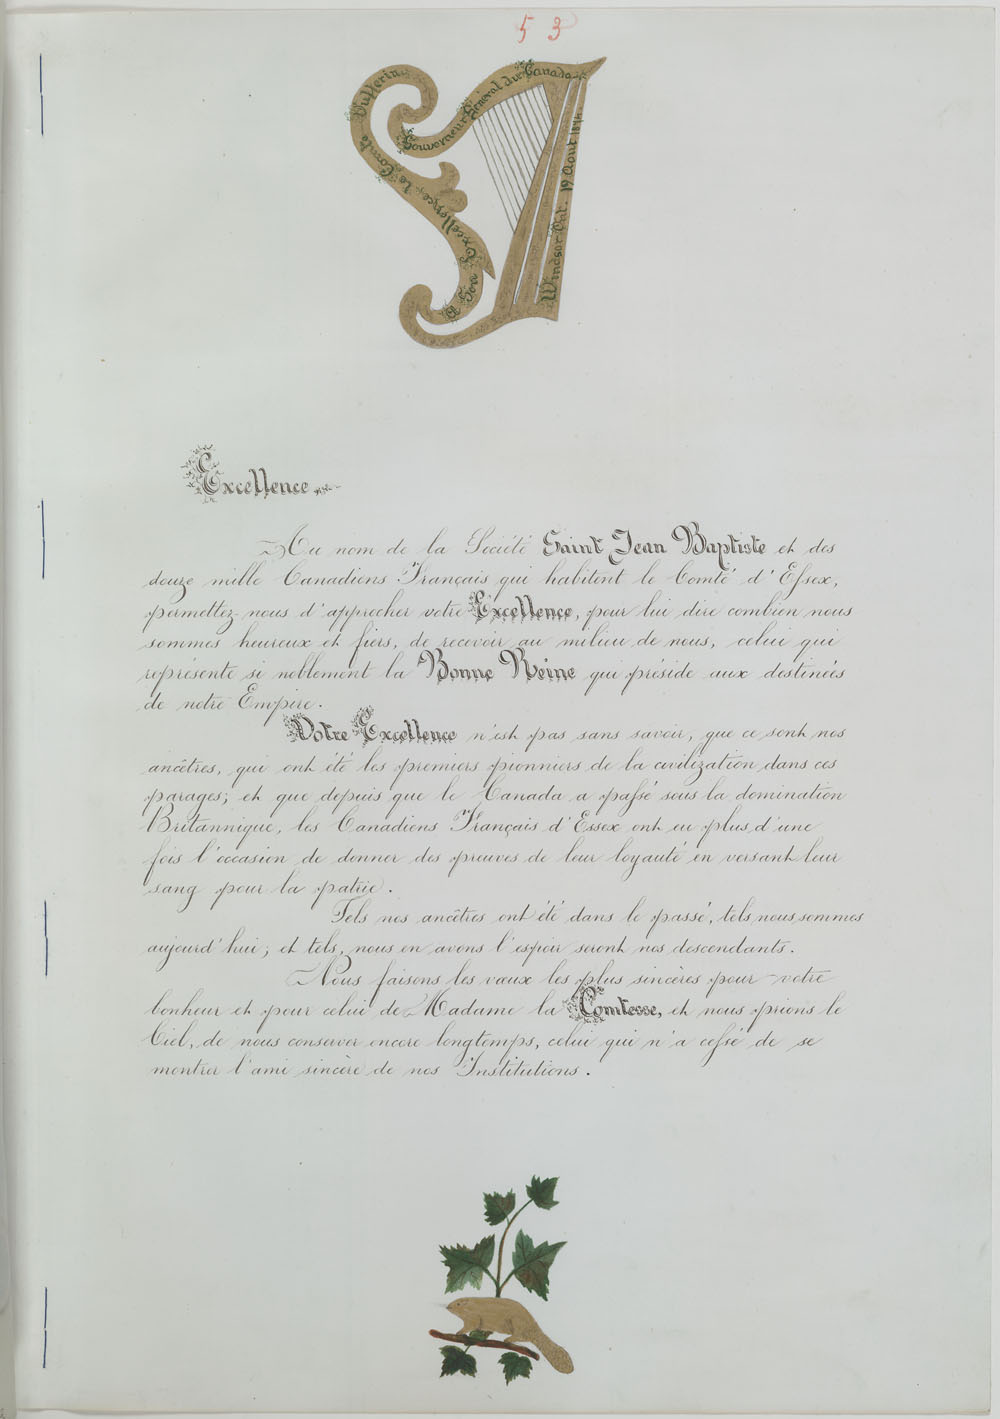 Address to Lord Dufferin from La Société St. Jean Baptiste of Essex County, Windsor